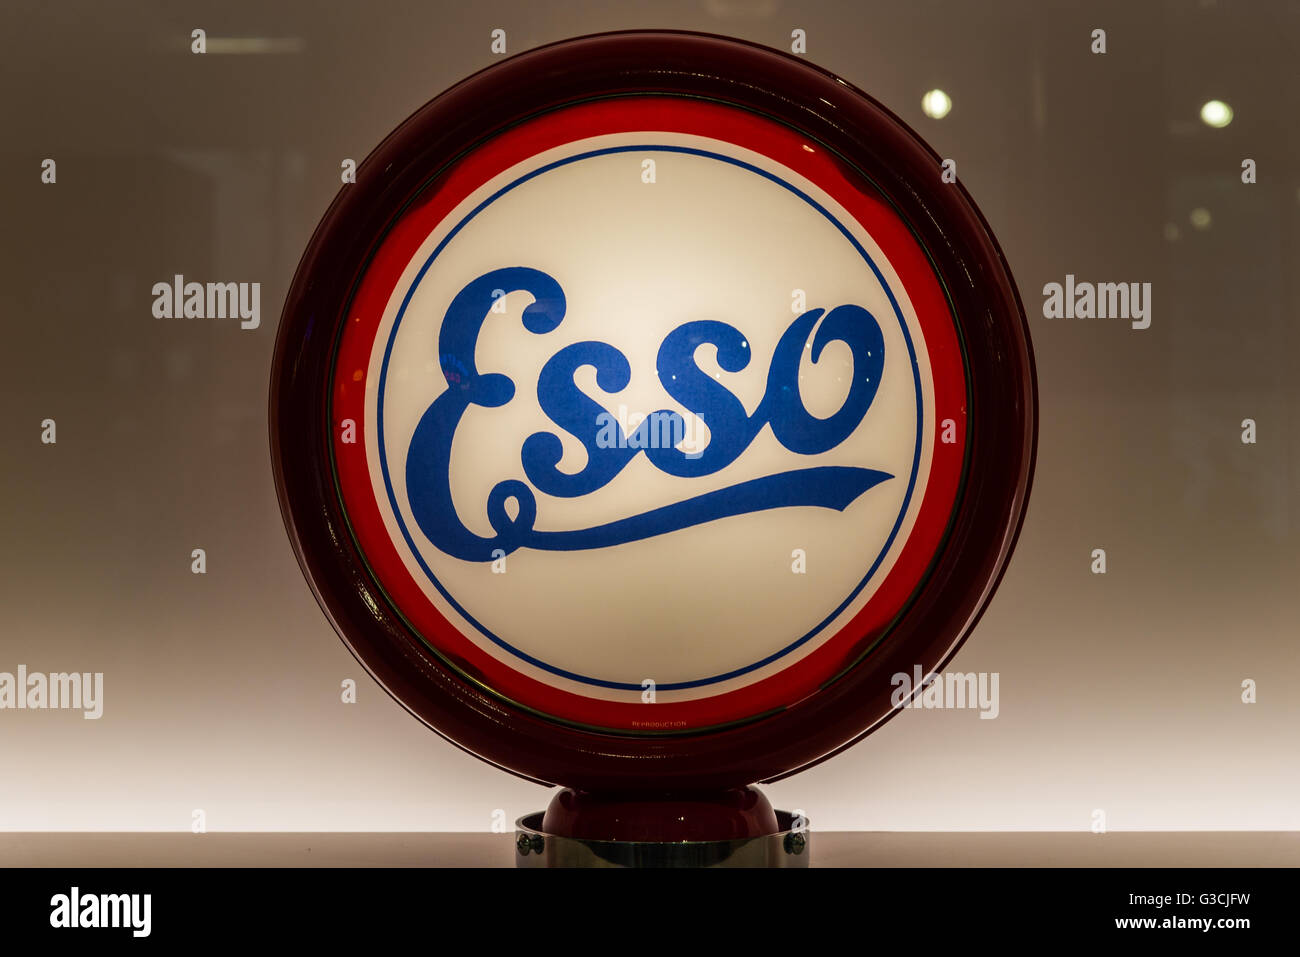 Glass globe for vintage Esso gas pump in display. - Stock Image